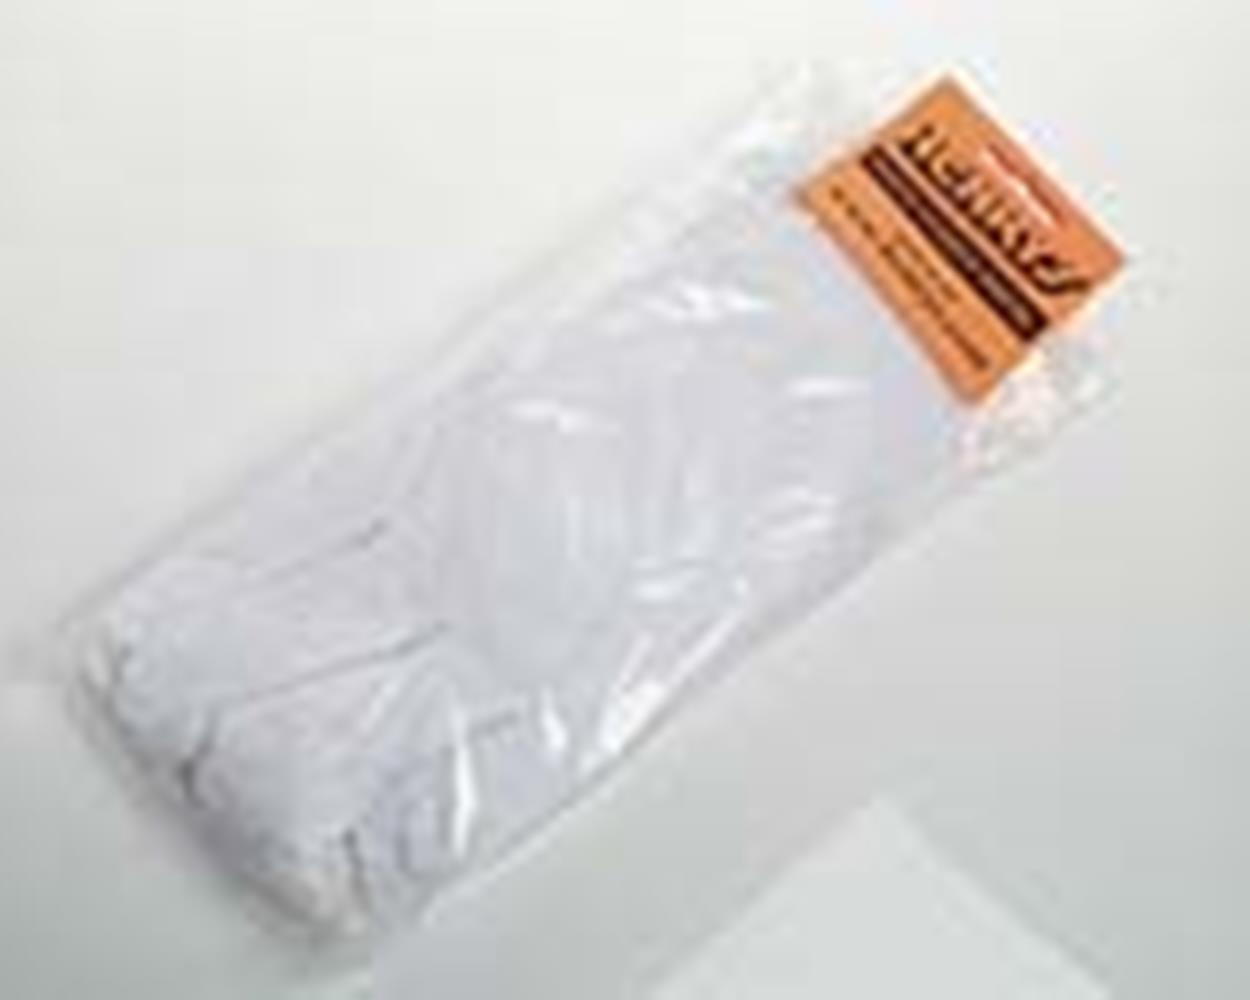 KALT LINTLESS GLOVES BULK (PKG/12 PAIR)